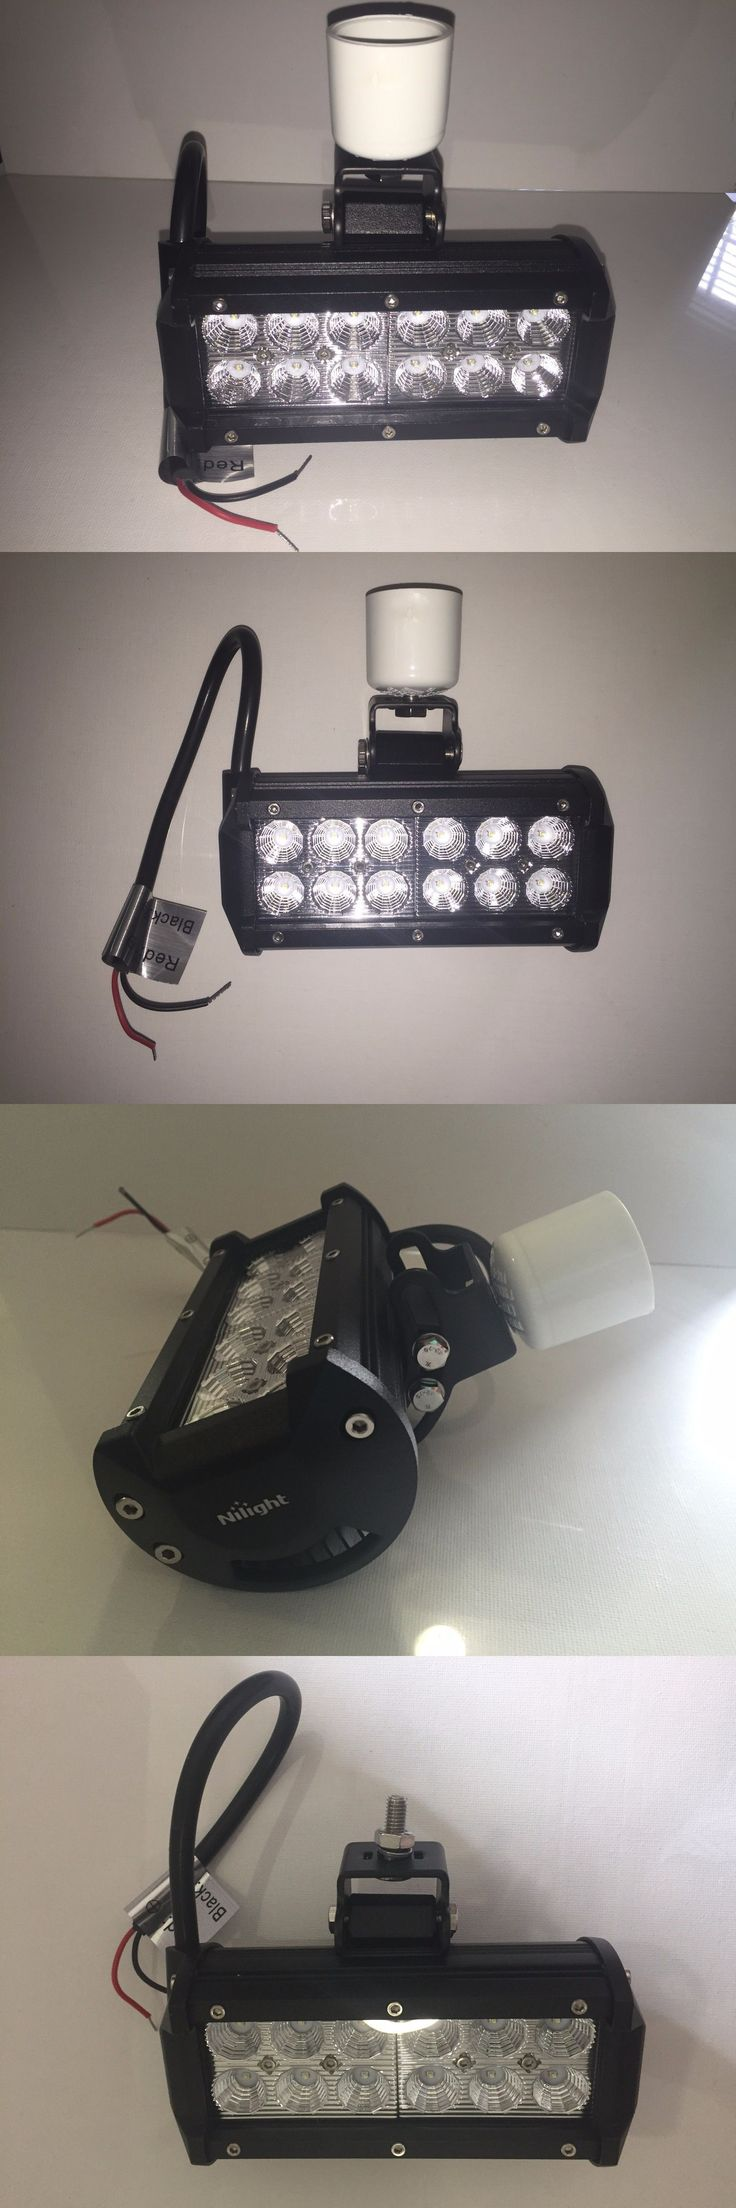 Lights 123489: Boat Light Waterproof Pvc Head Led 36 Watts 3600 Lumens 12 Volt (Fishing) -> BUY IT NOW ONLY: $51.99 on eBay!